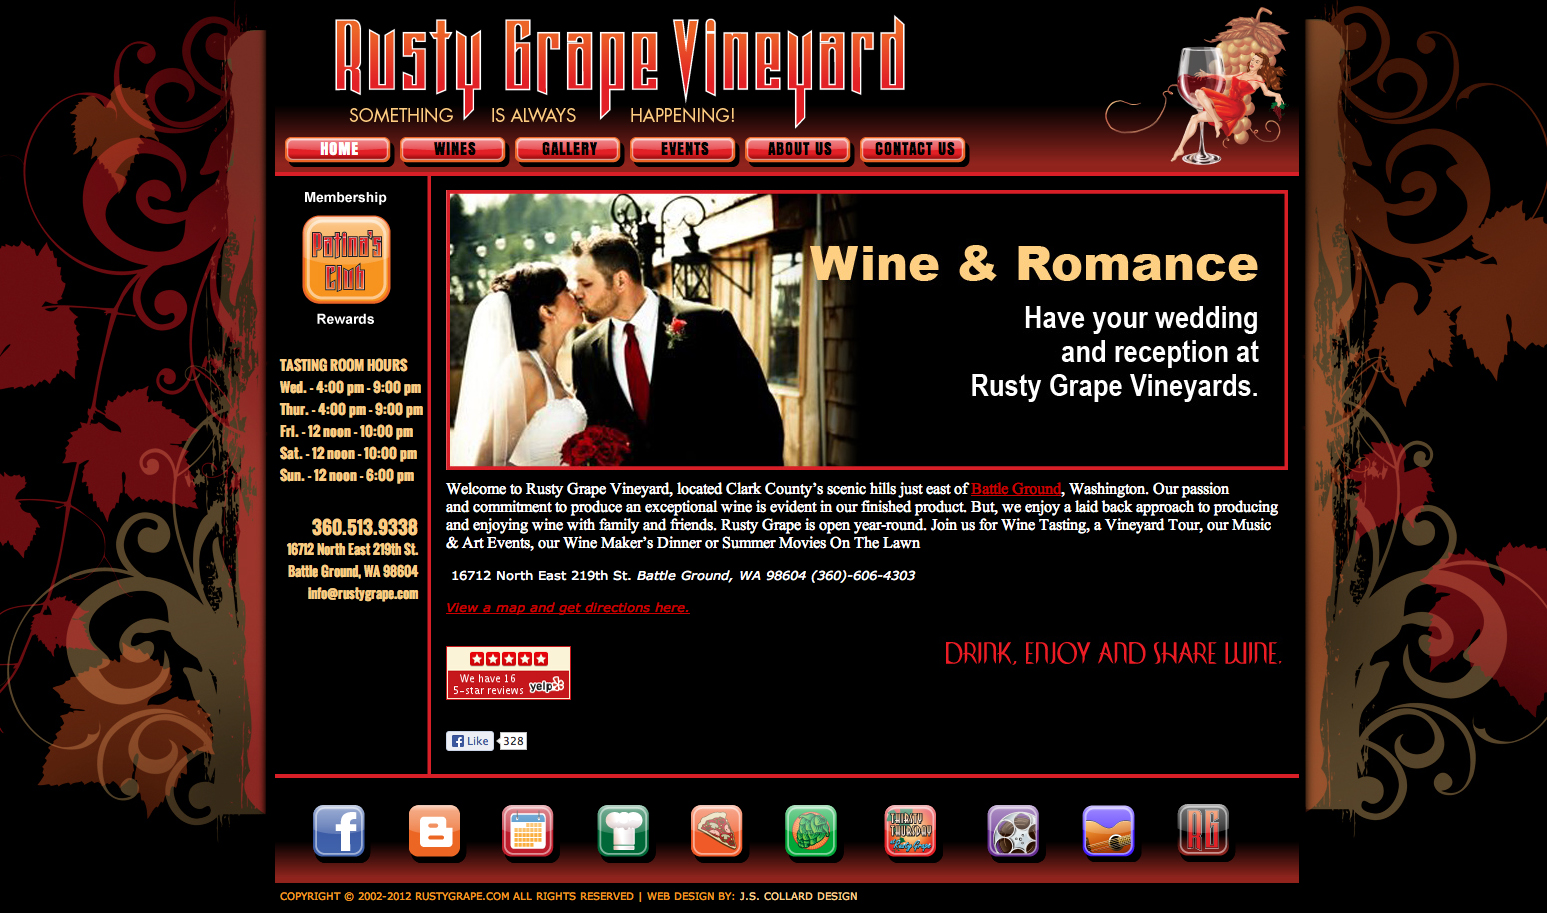 Rusty Grape Vineyard Website